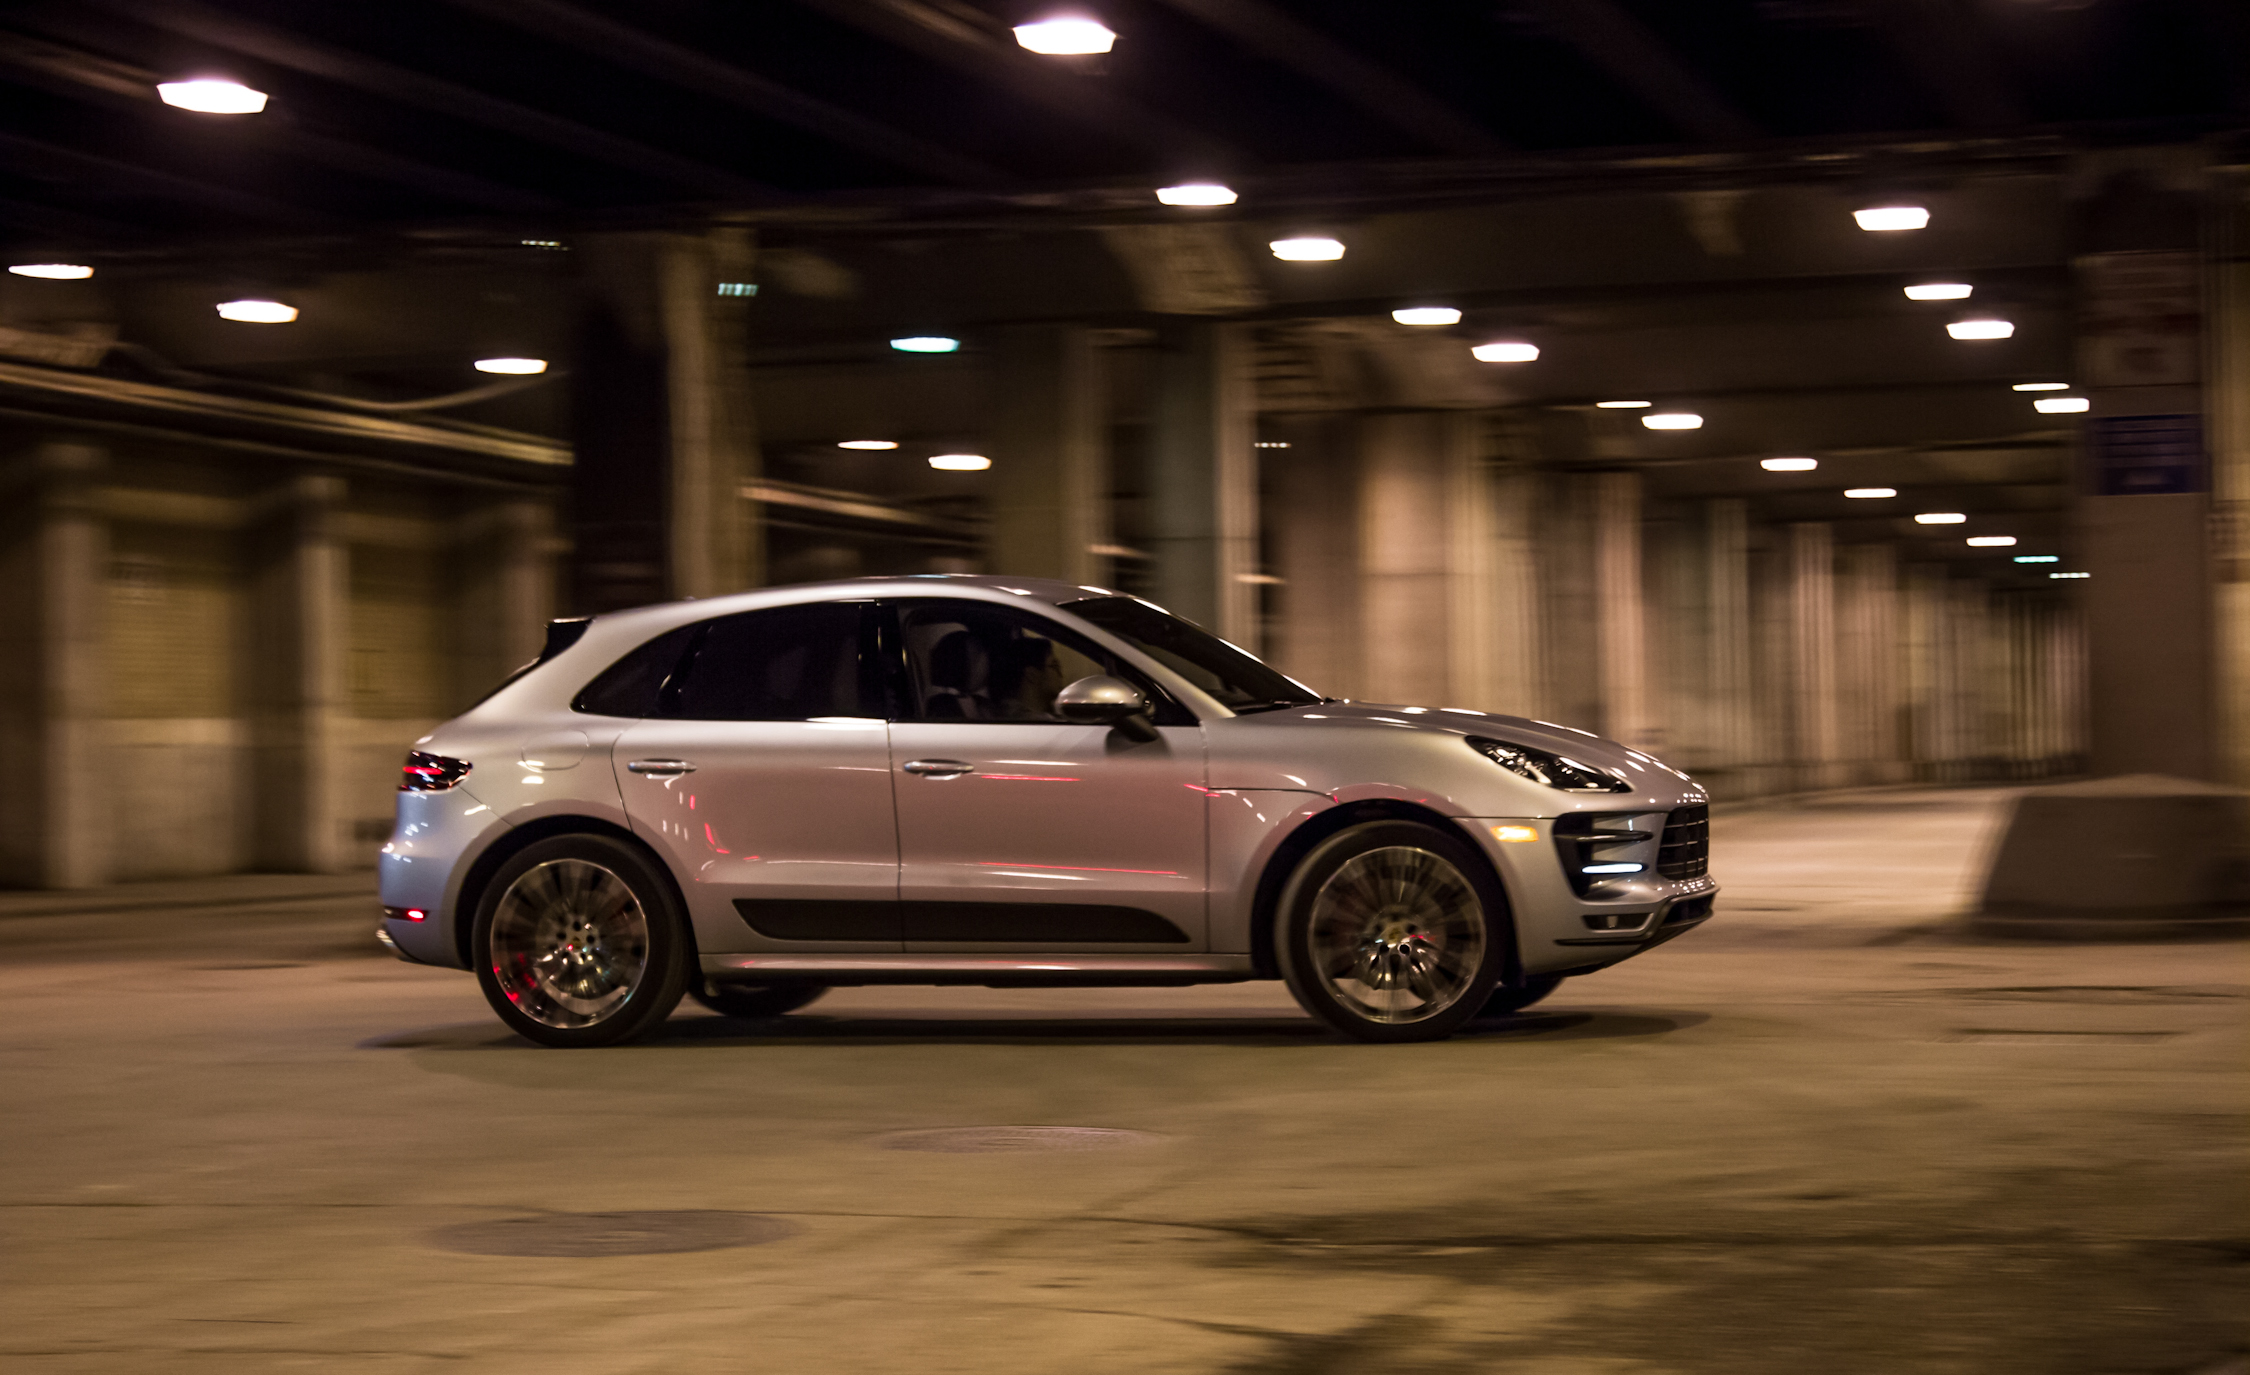 2015 Porsche Macan Turbo (View 13 of 20)